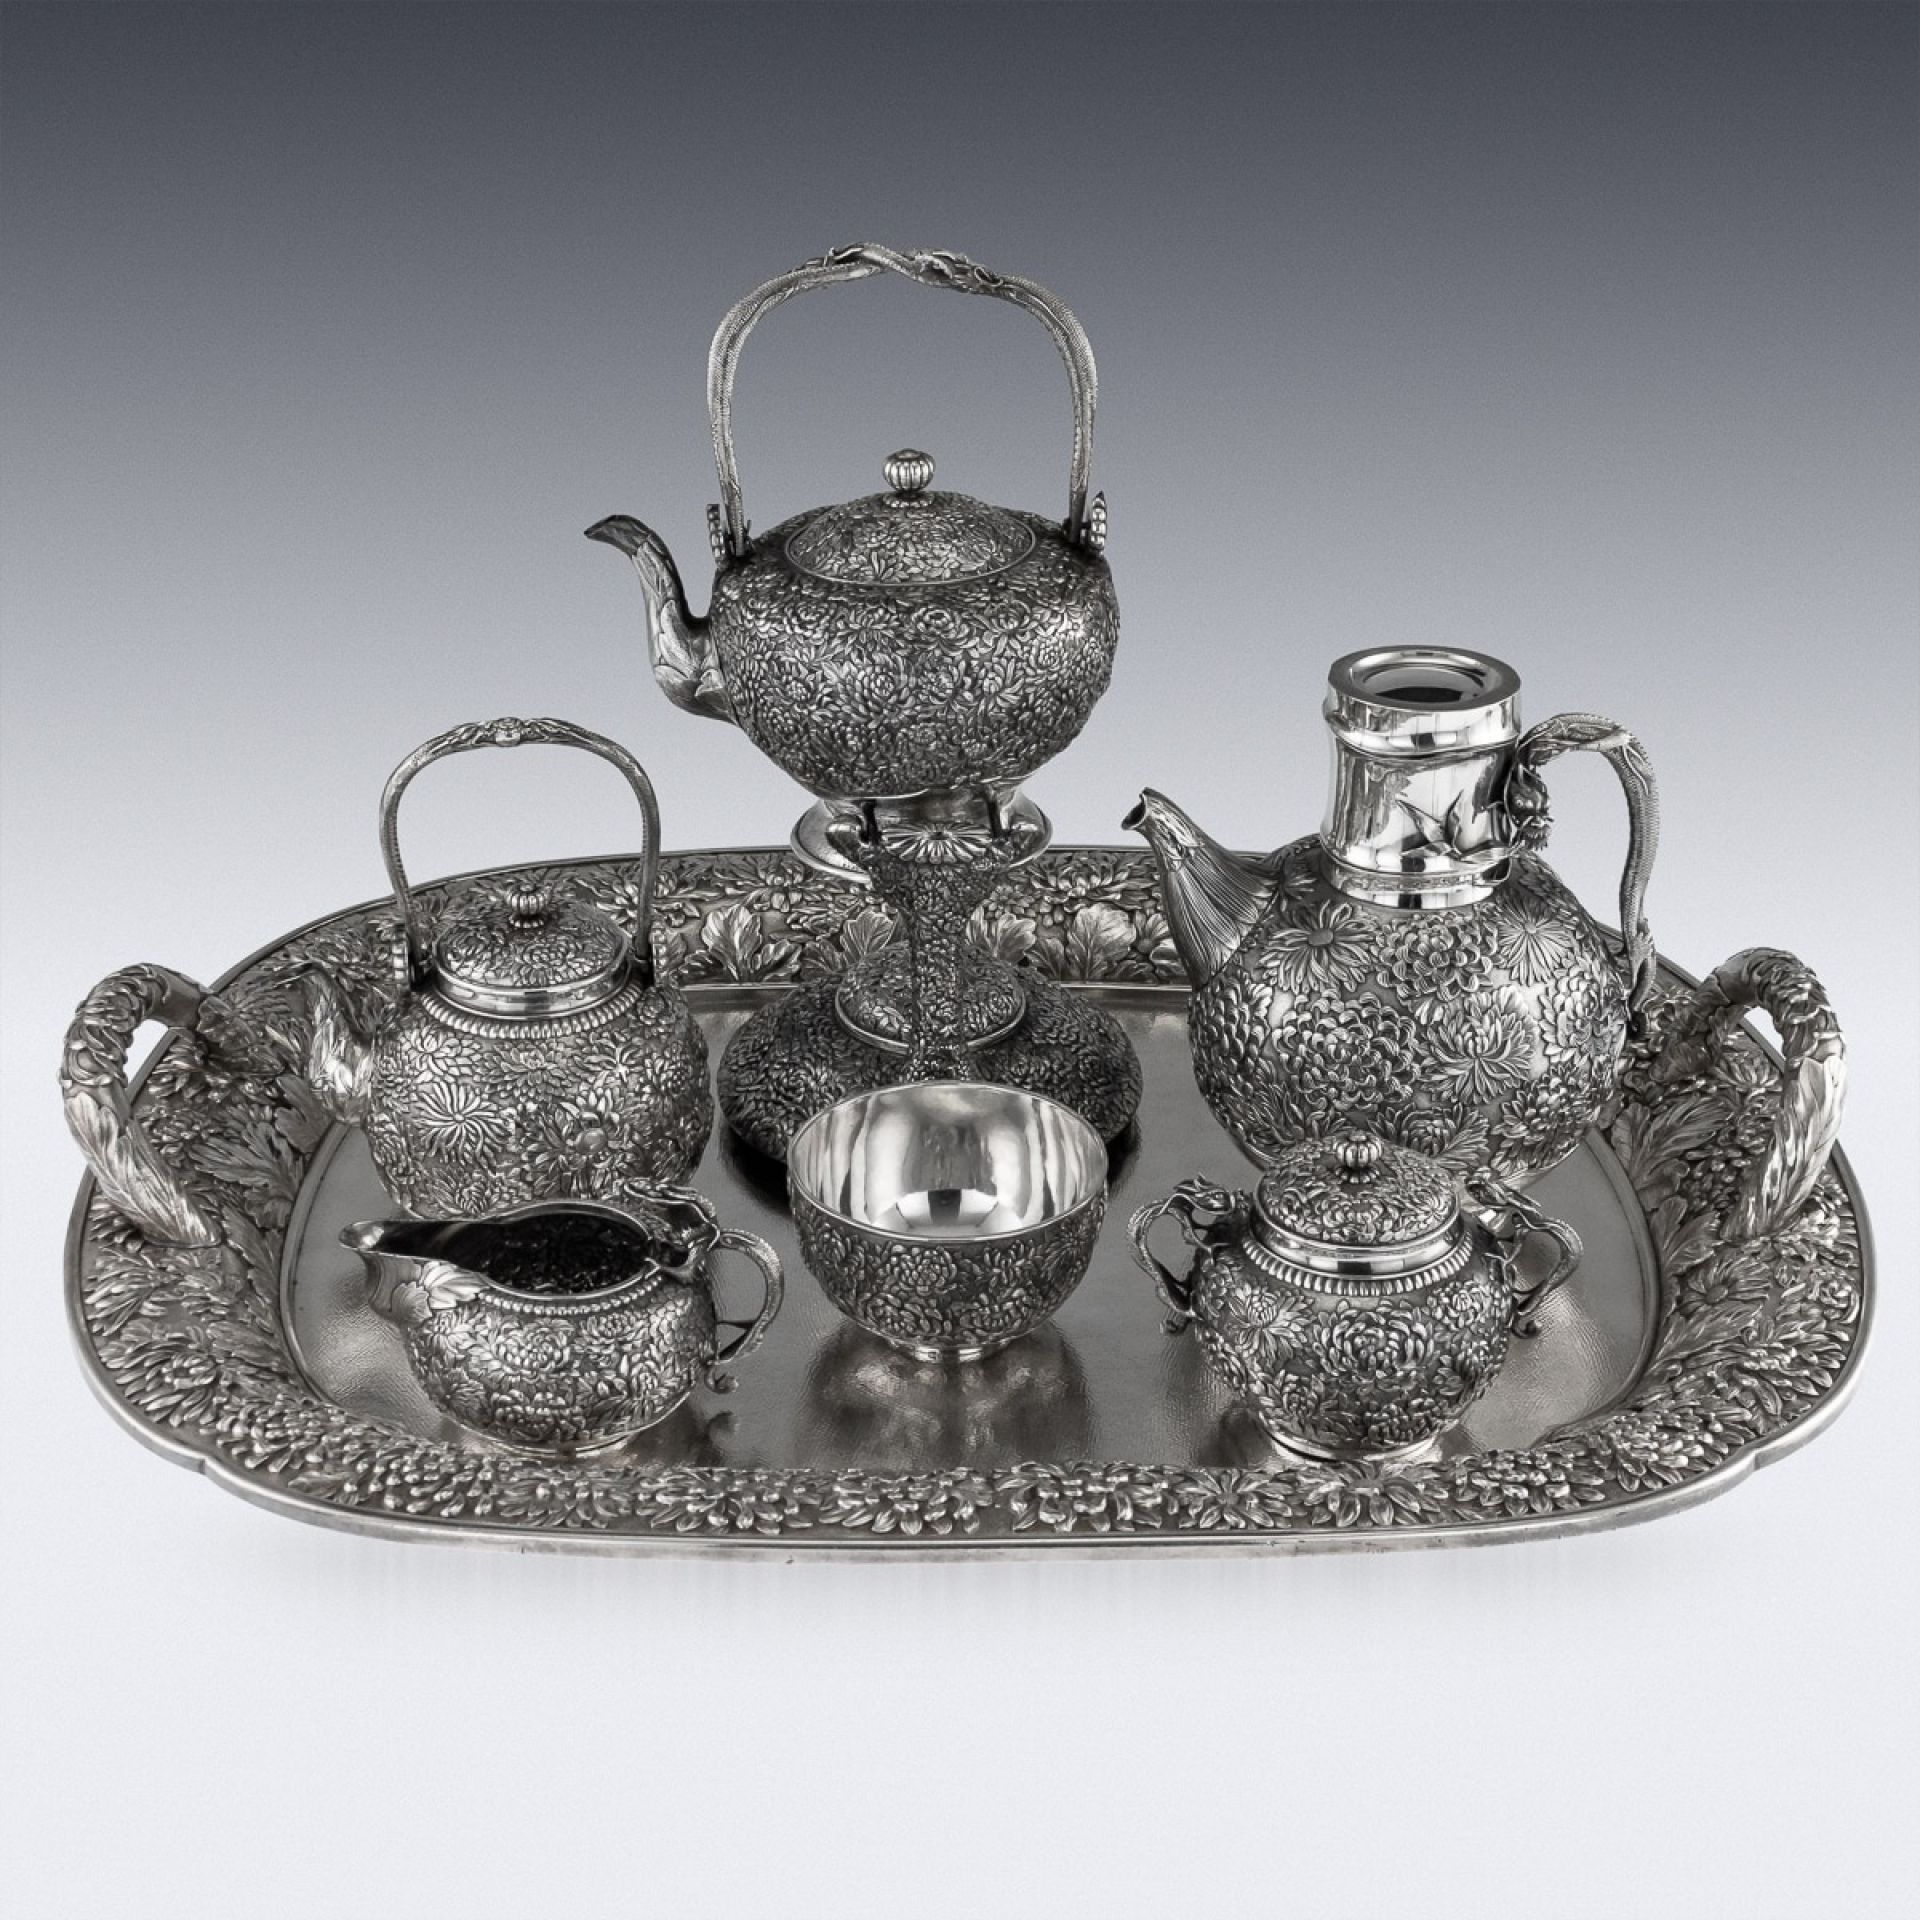 ANTIQUE 20thC JAPANESE SOLID SILVER TEA & COFFEE SERVICE ON TRAY, KONOIKE c.1900